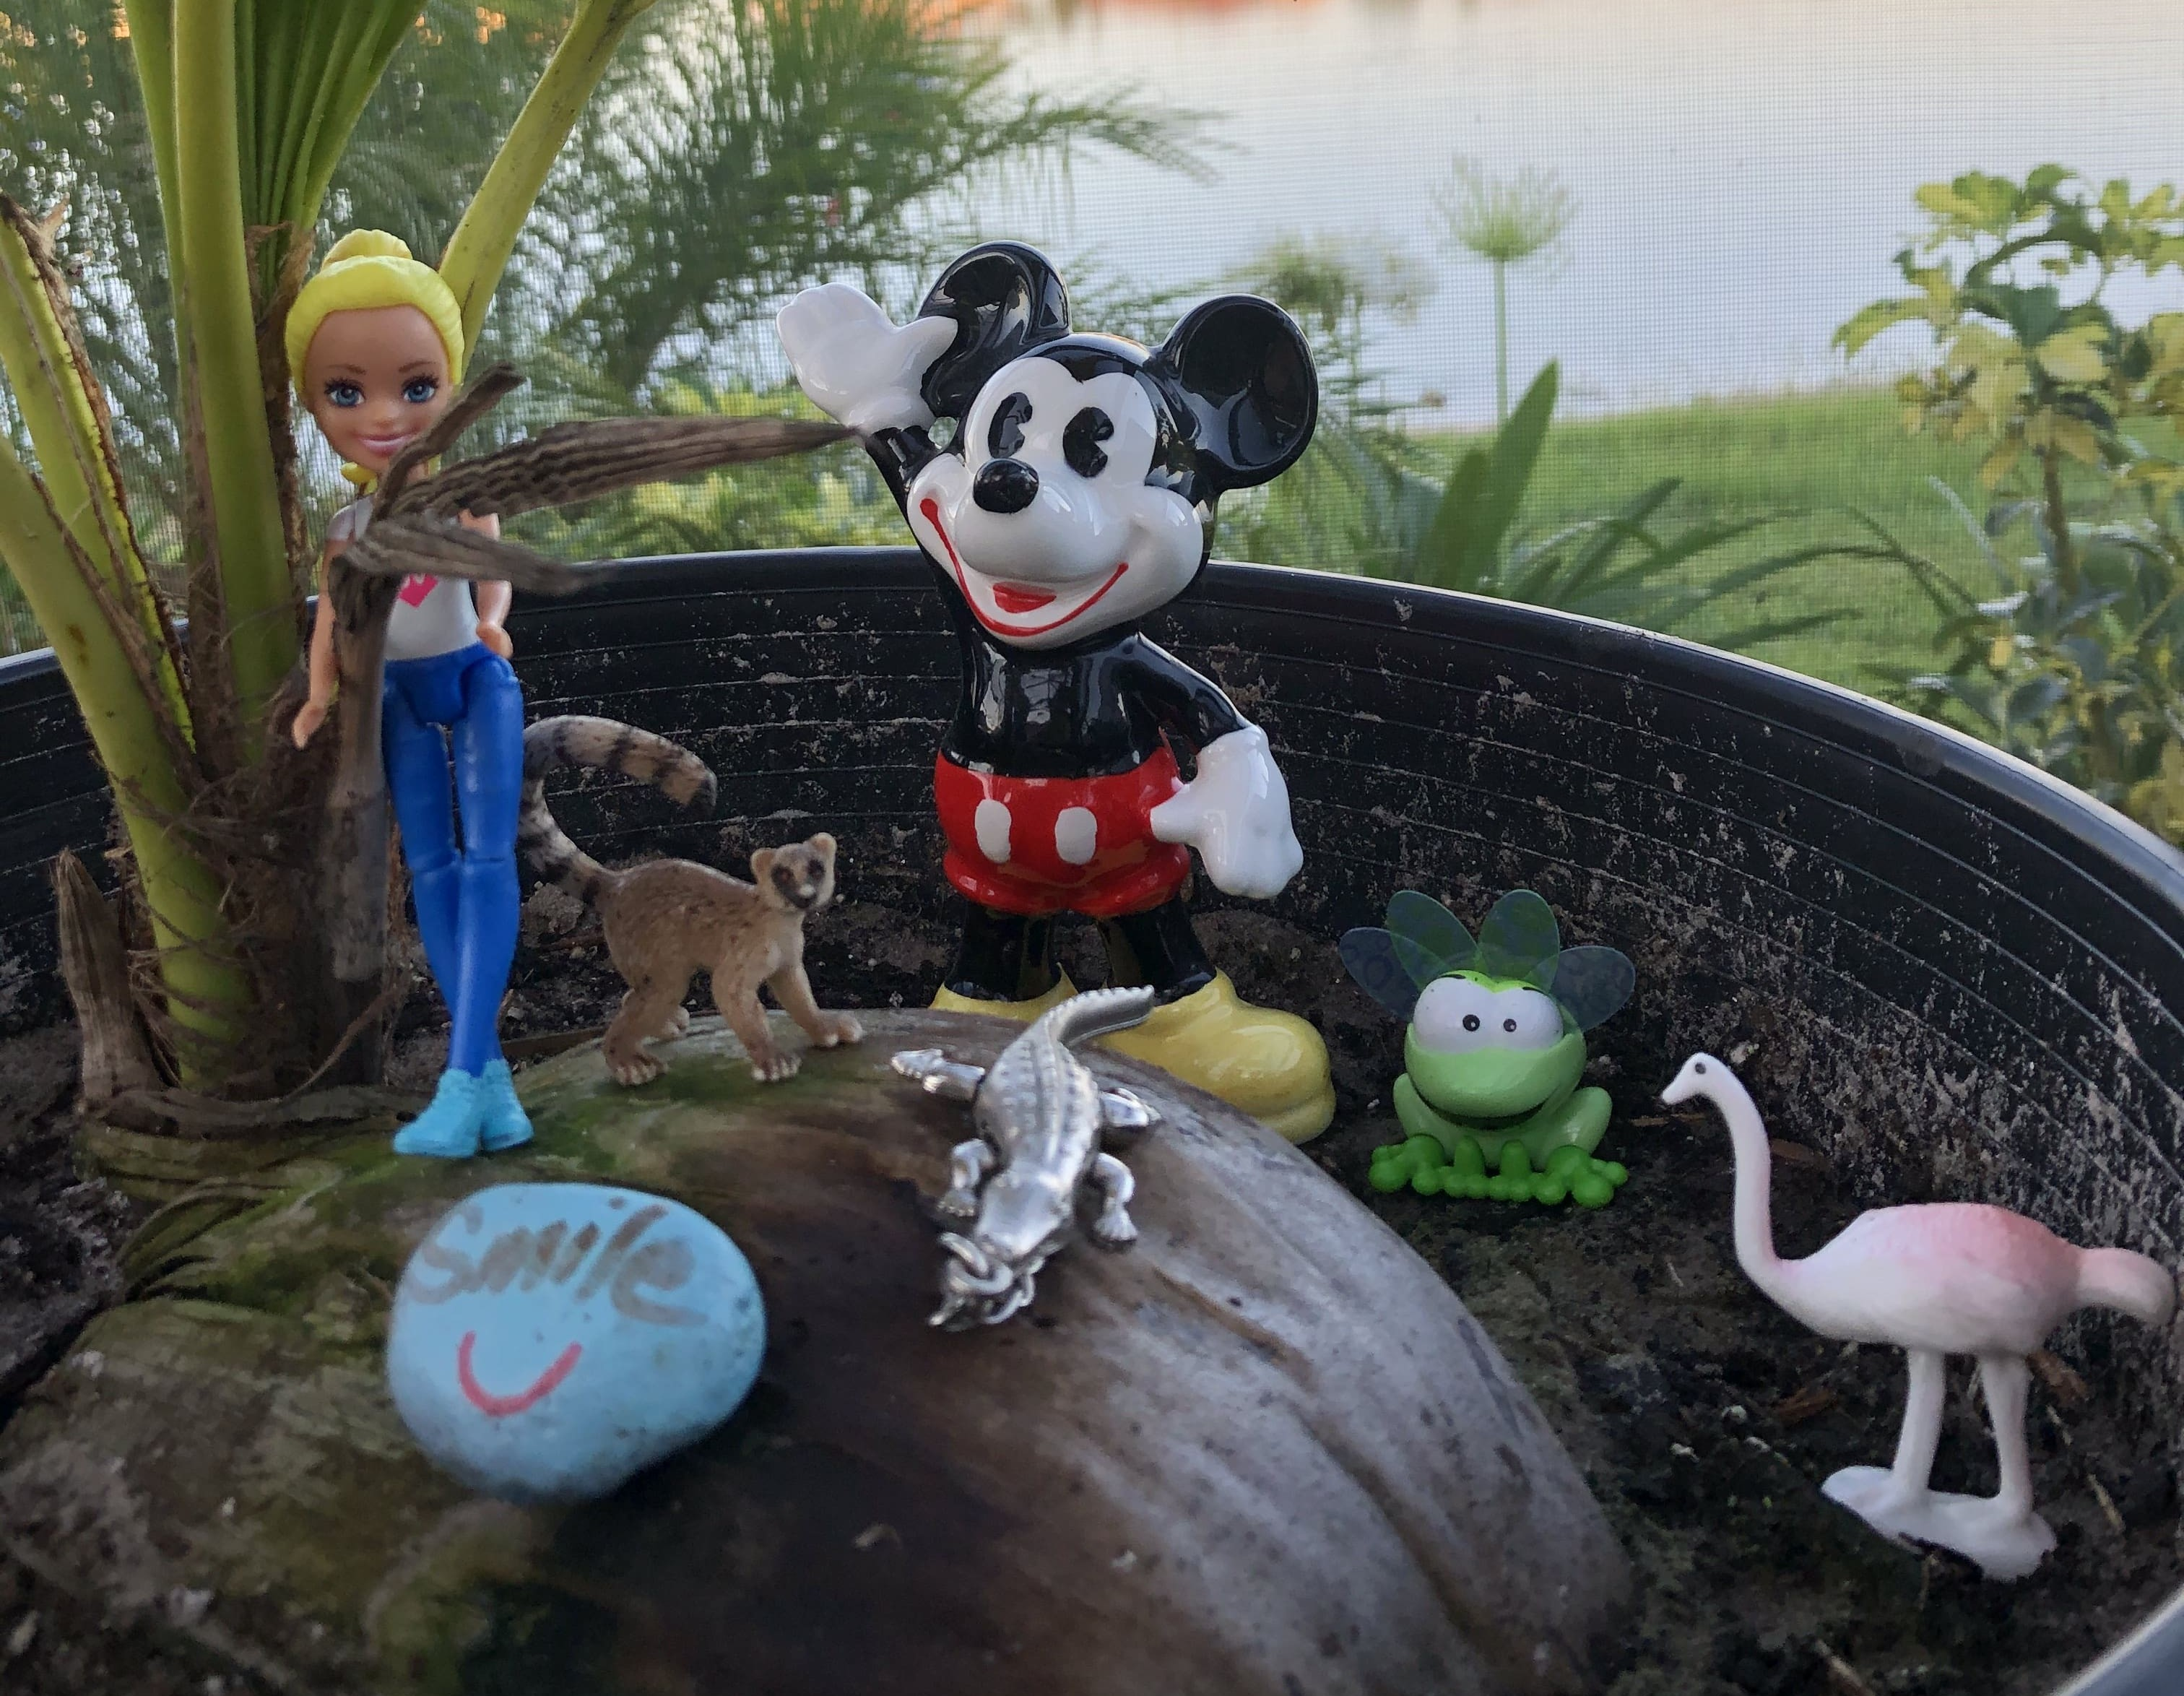 Collection of toys in a plant pot